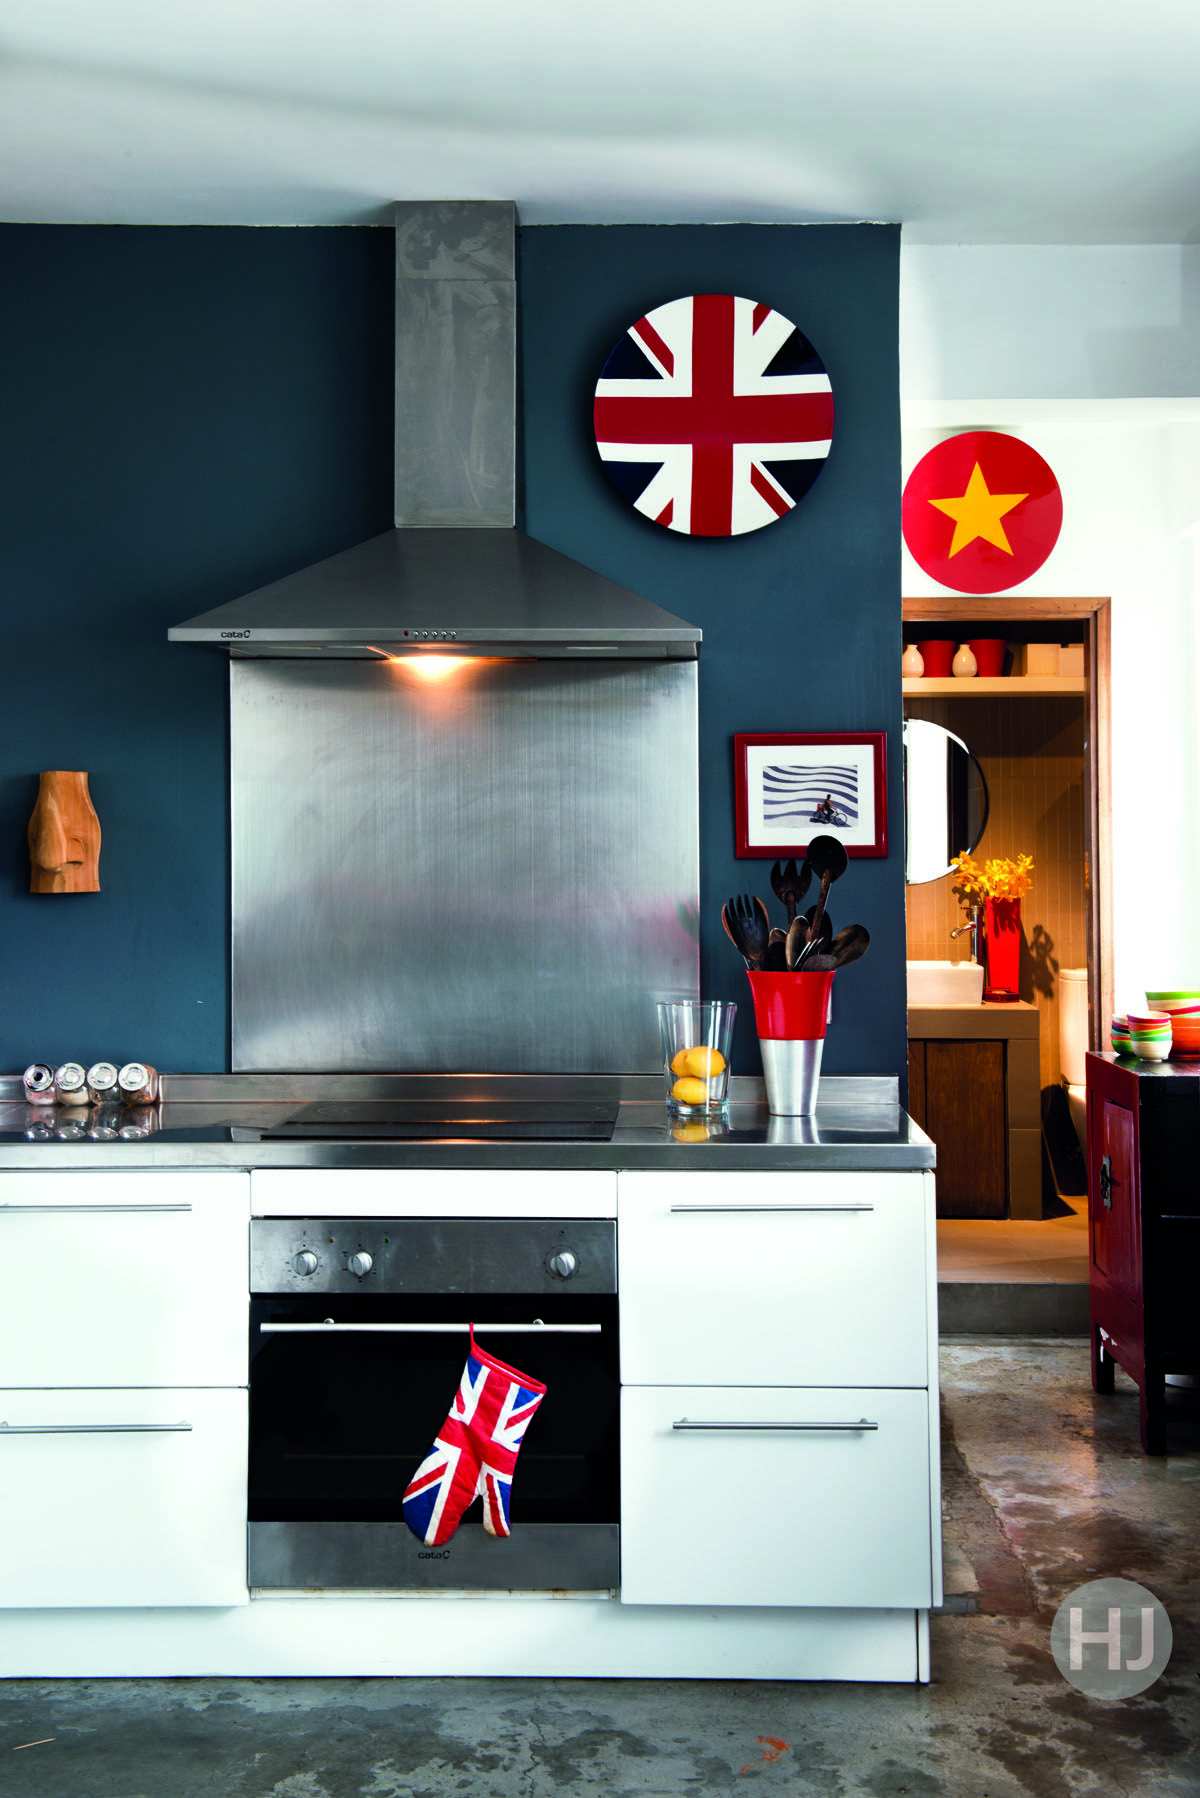 This kitchen is painted with pride to represent the family's proud british heritage in petrol blue, white and fire engine red. Home Journal, February 2015